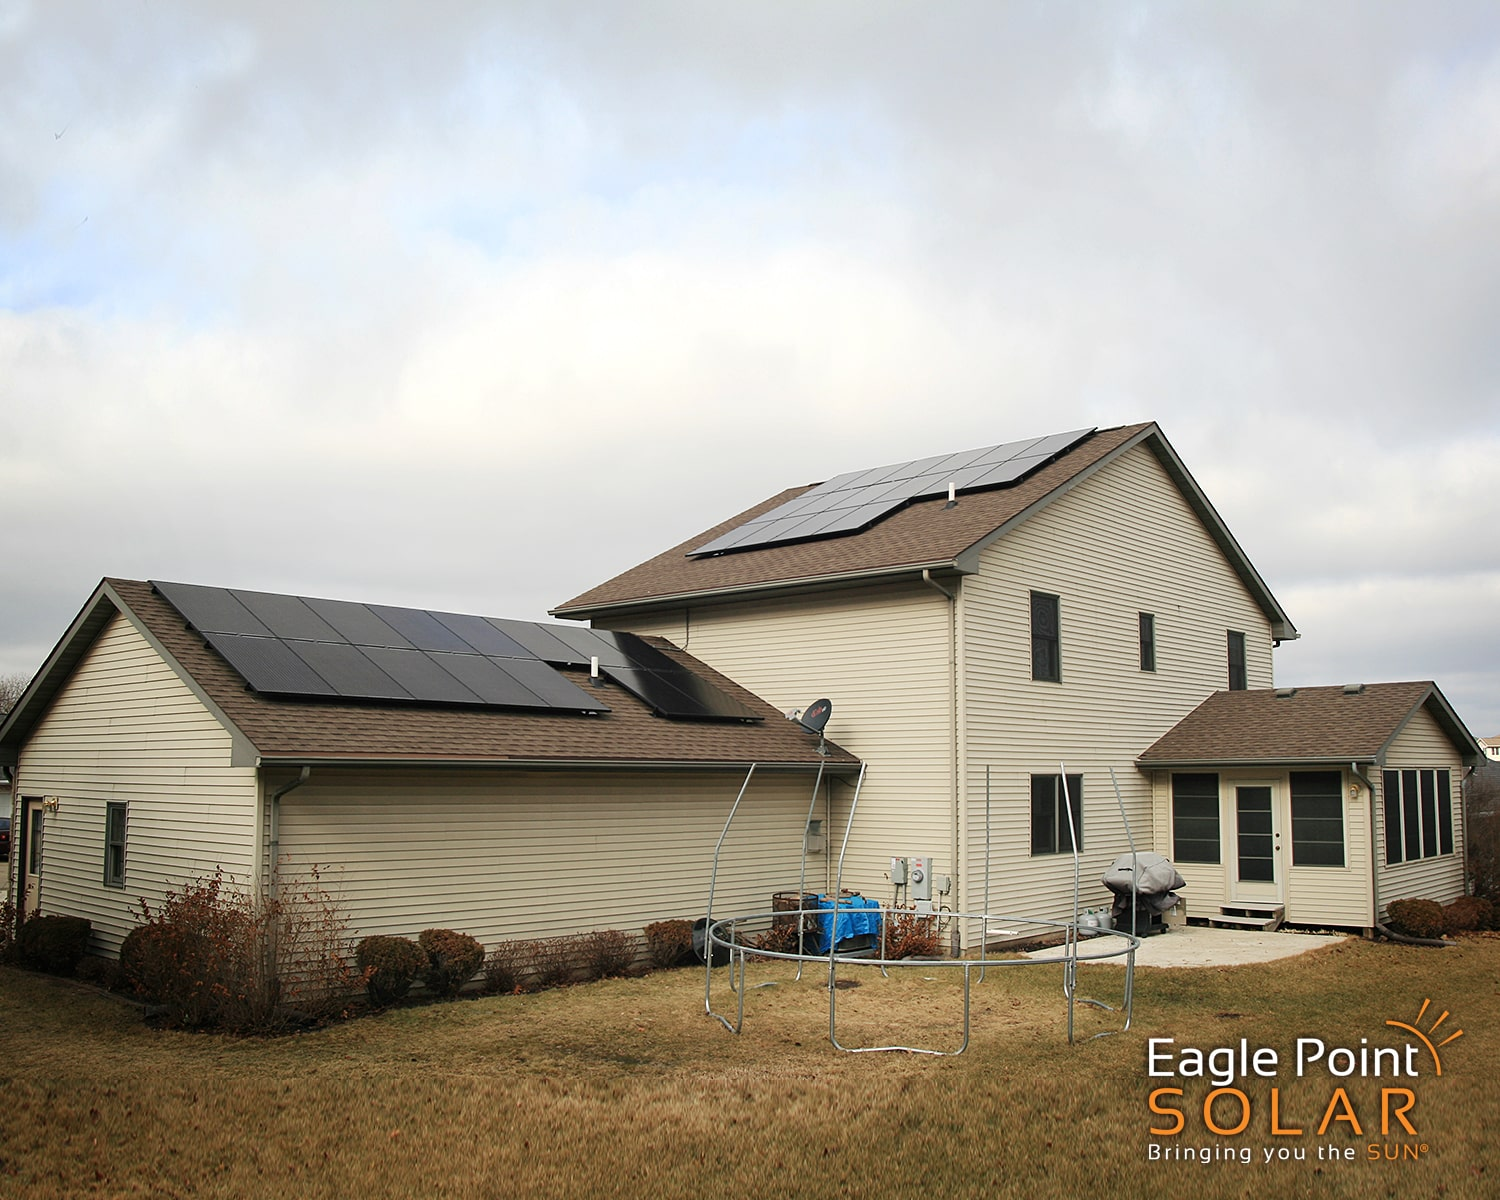 Photo of residential roof mounted solar array on Coleman house